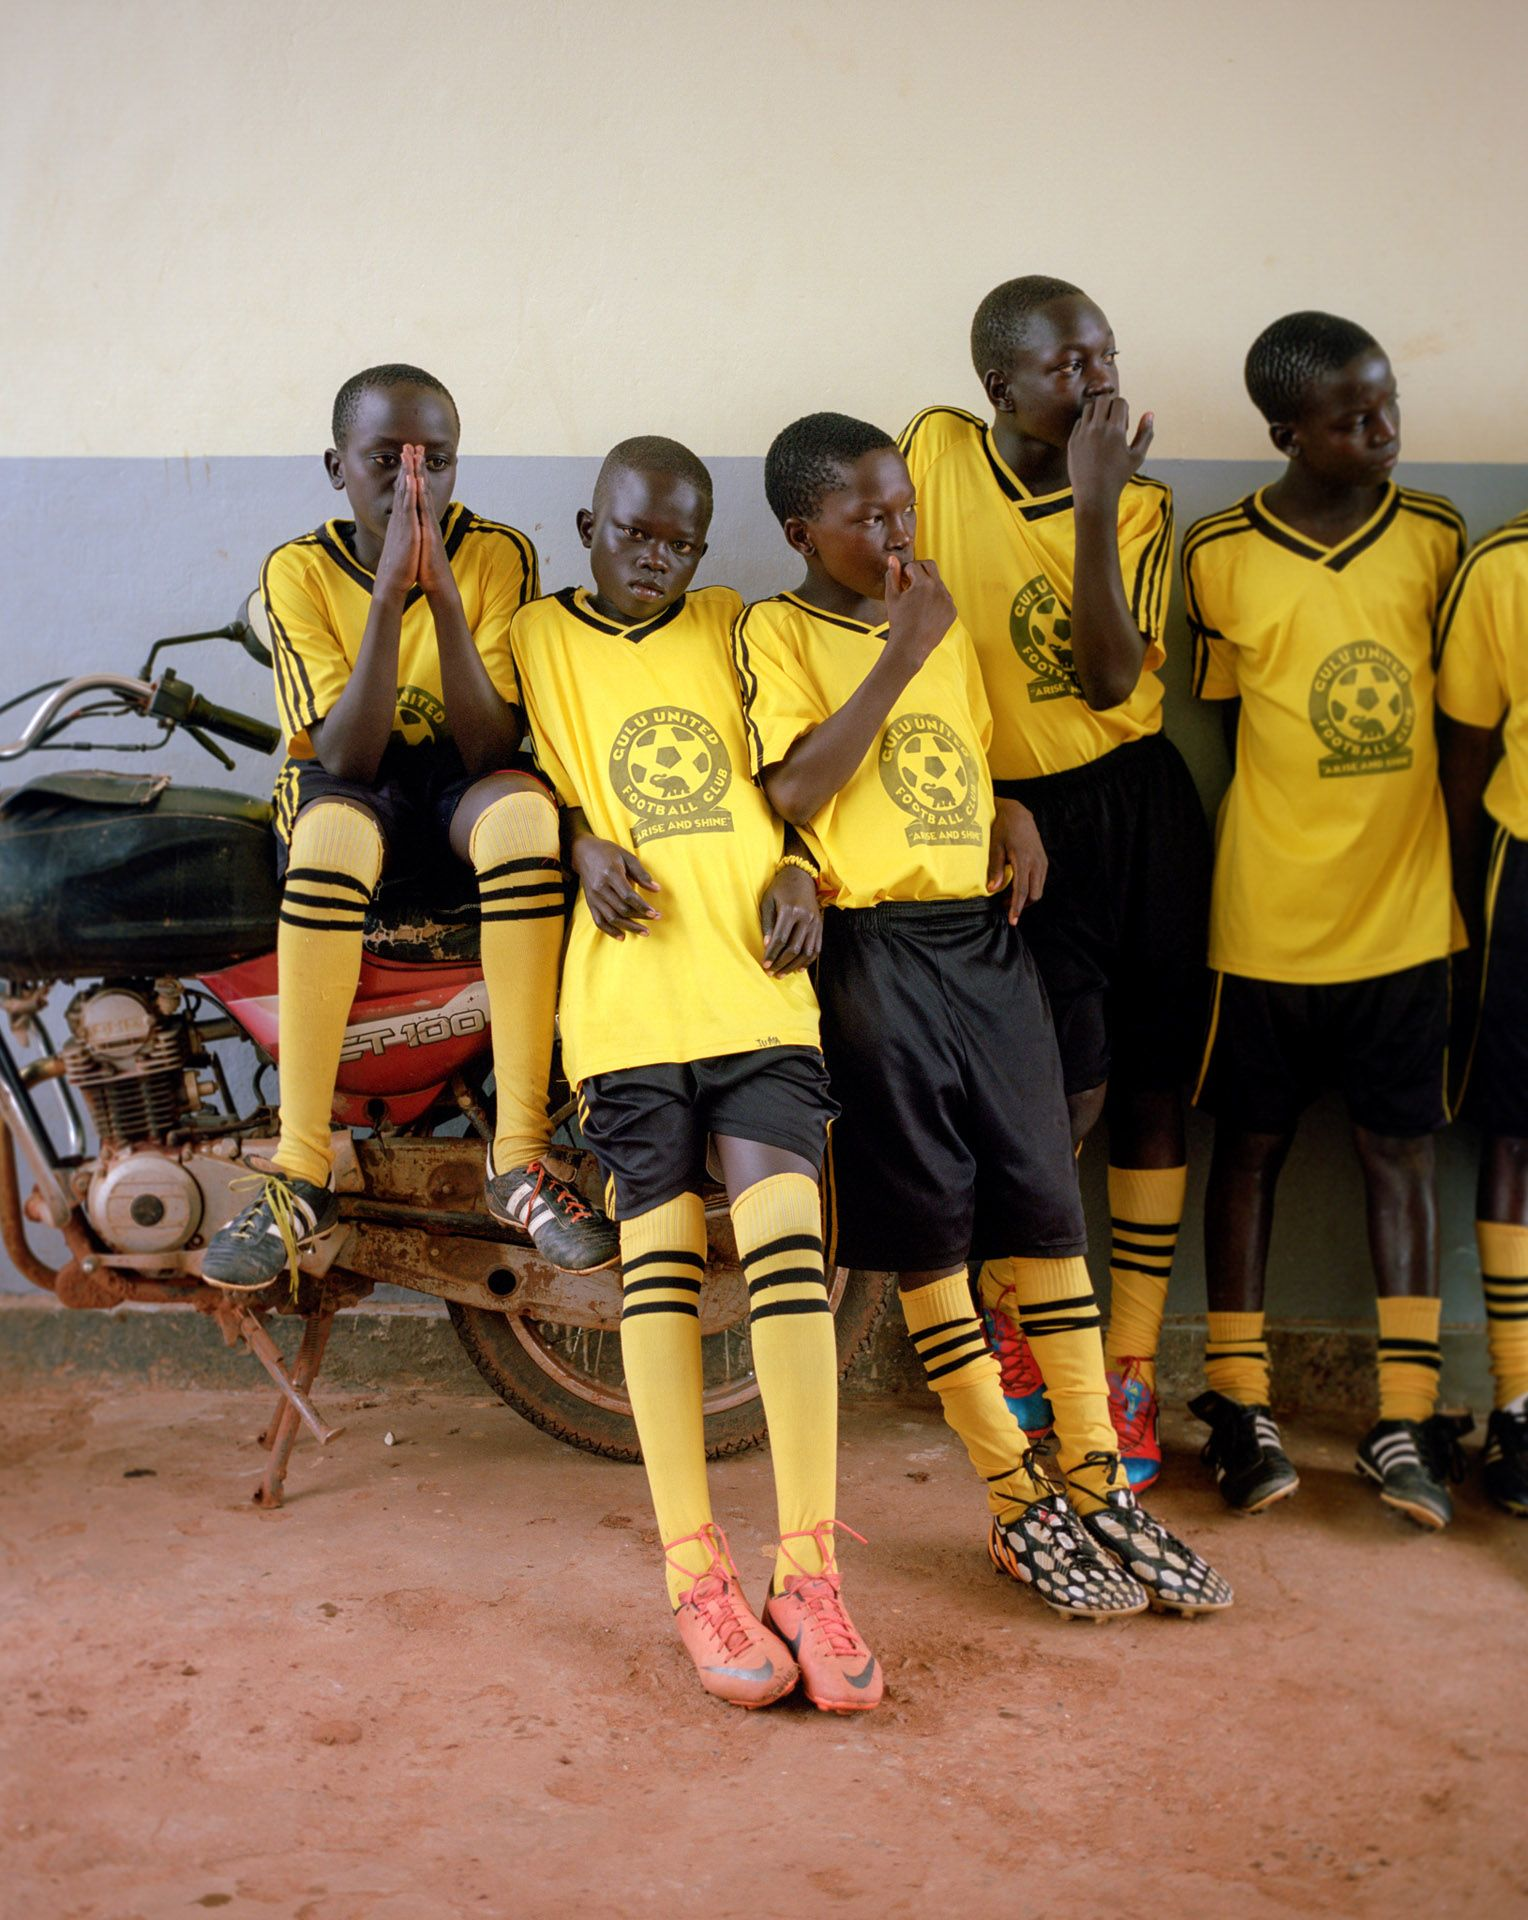 young black boys soccer players waiting on parked scooter by Alexi Hobbs in Uganda for Football for good with Sportsnet